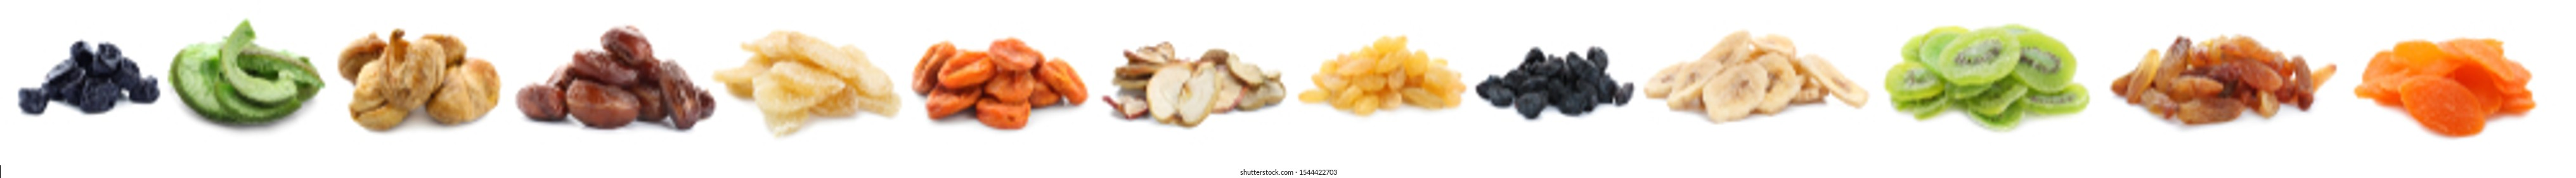 Assortment of tasty dried fruits on white background